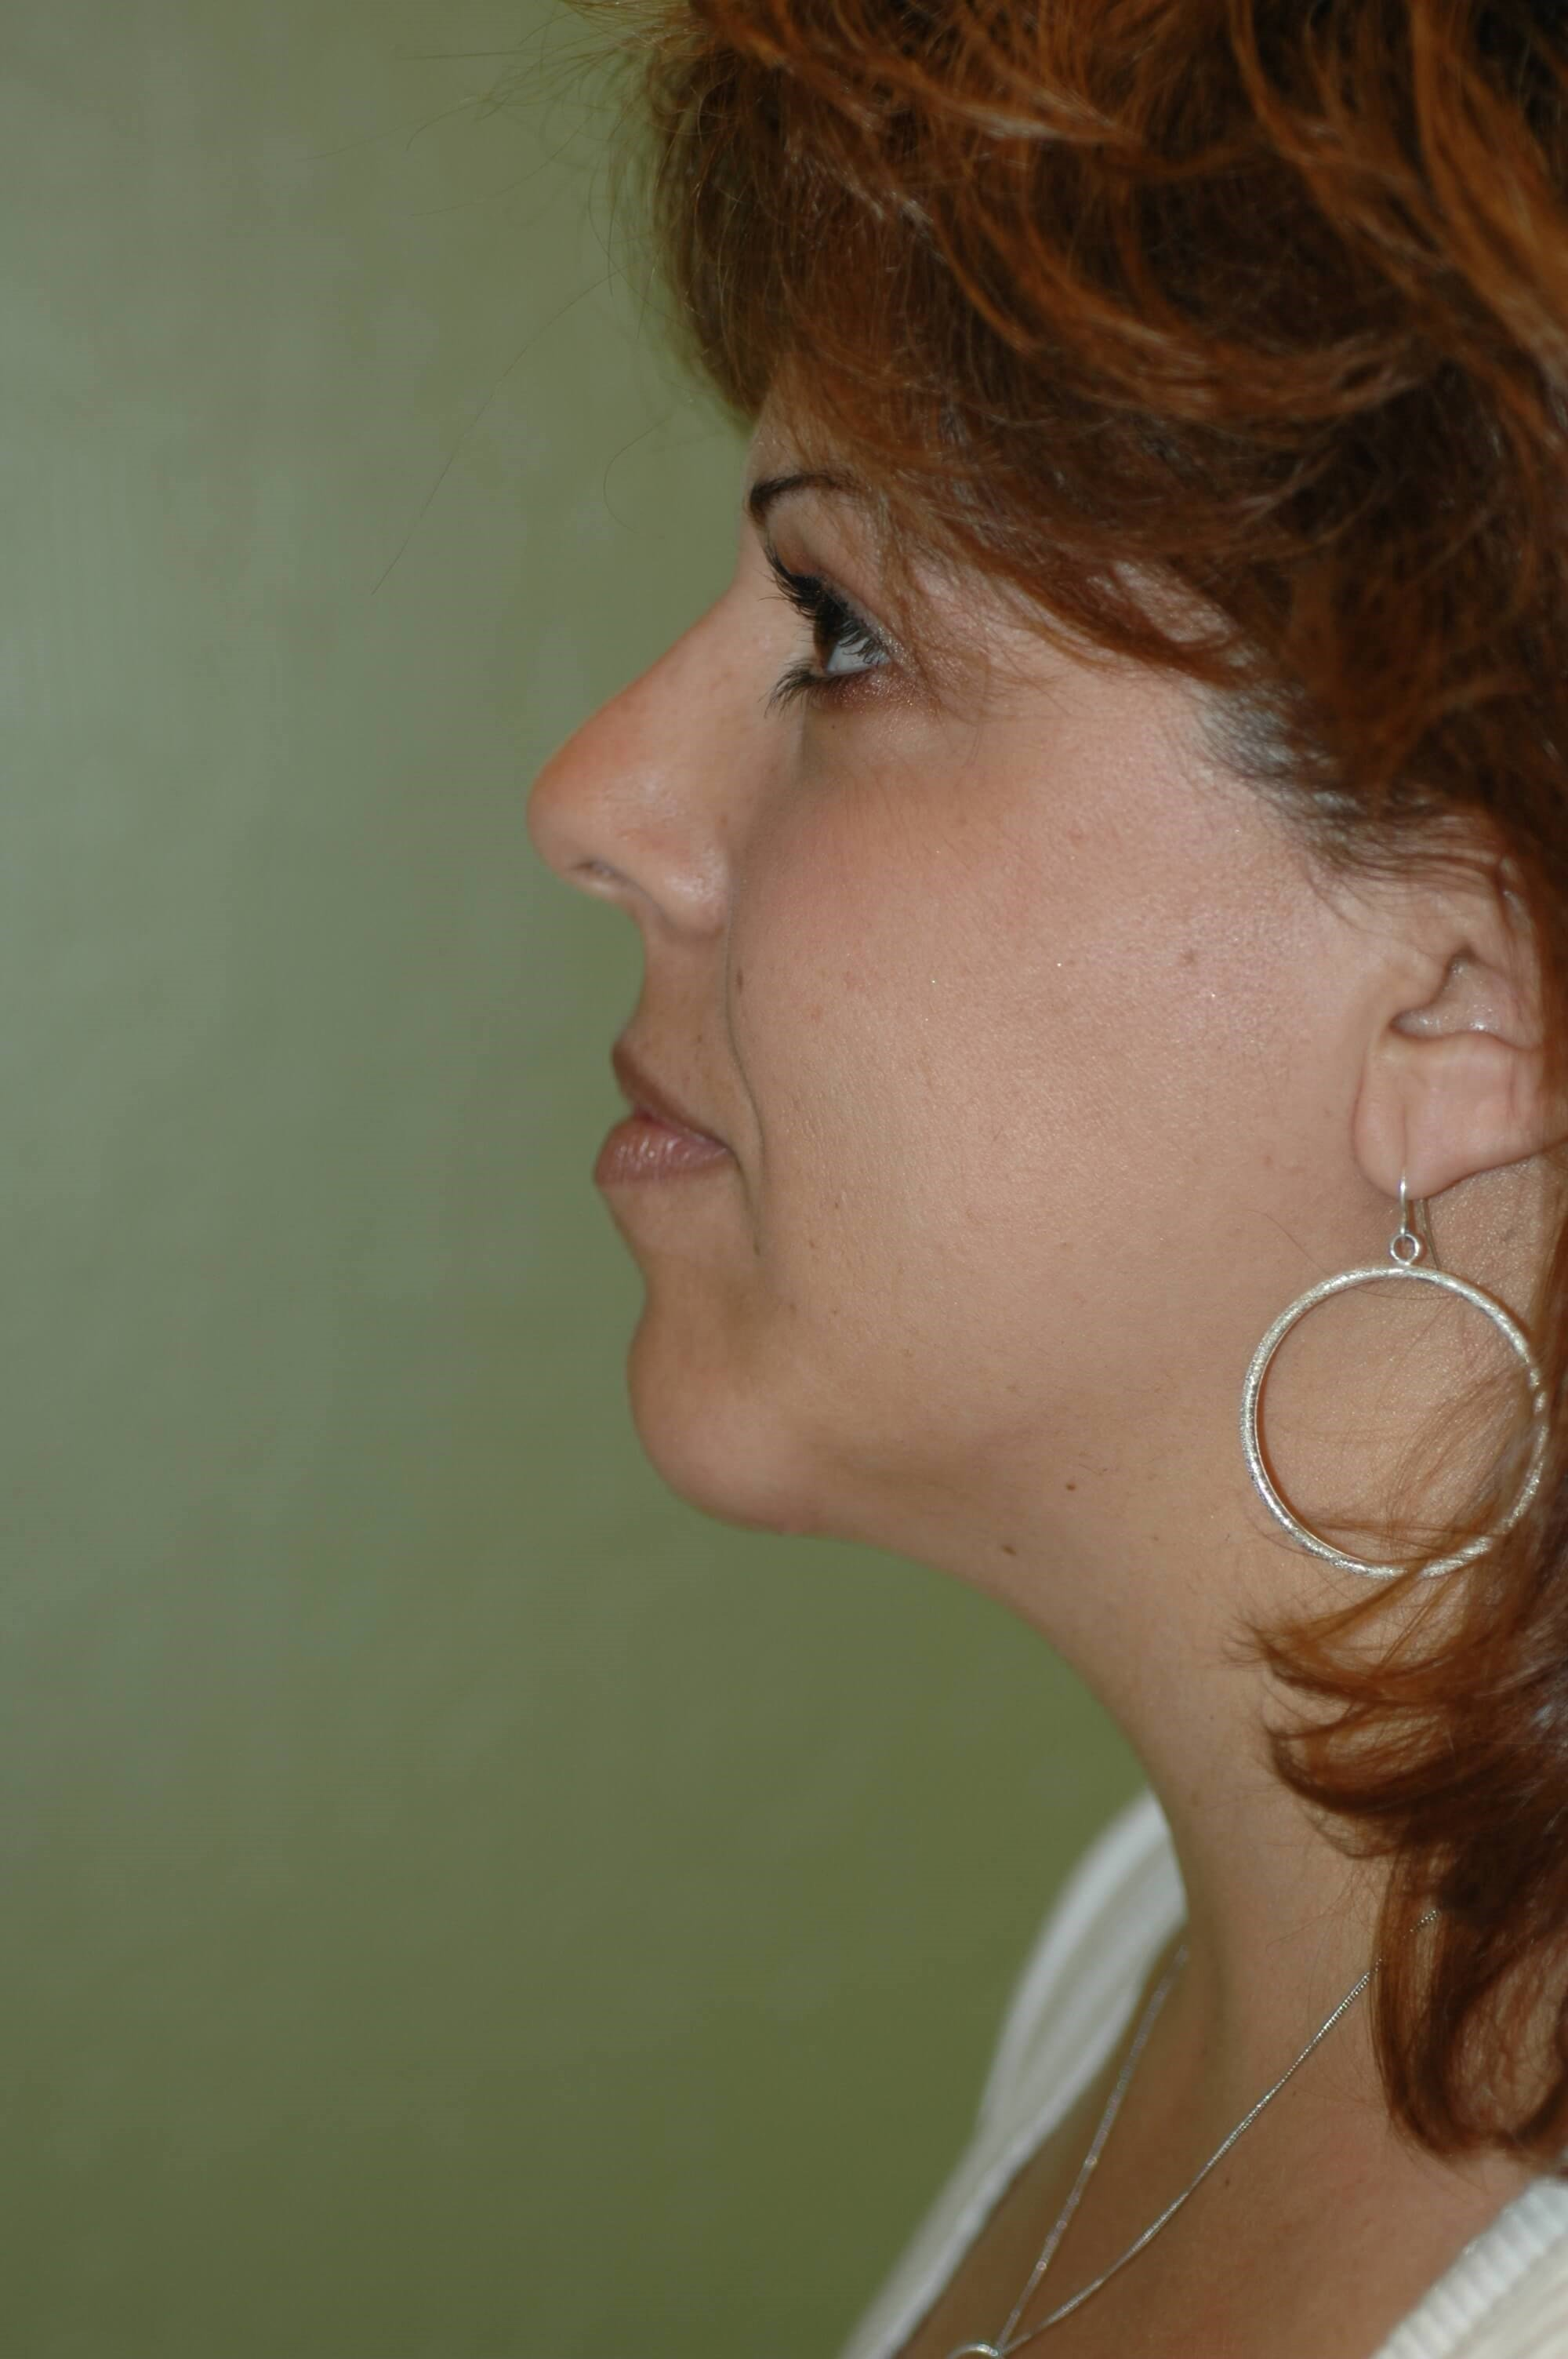 Newport Beach Chin Implant Front View After